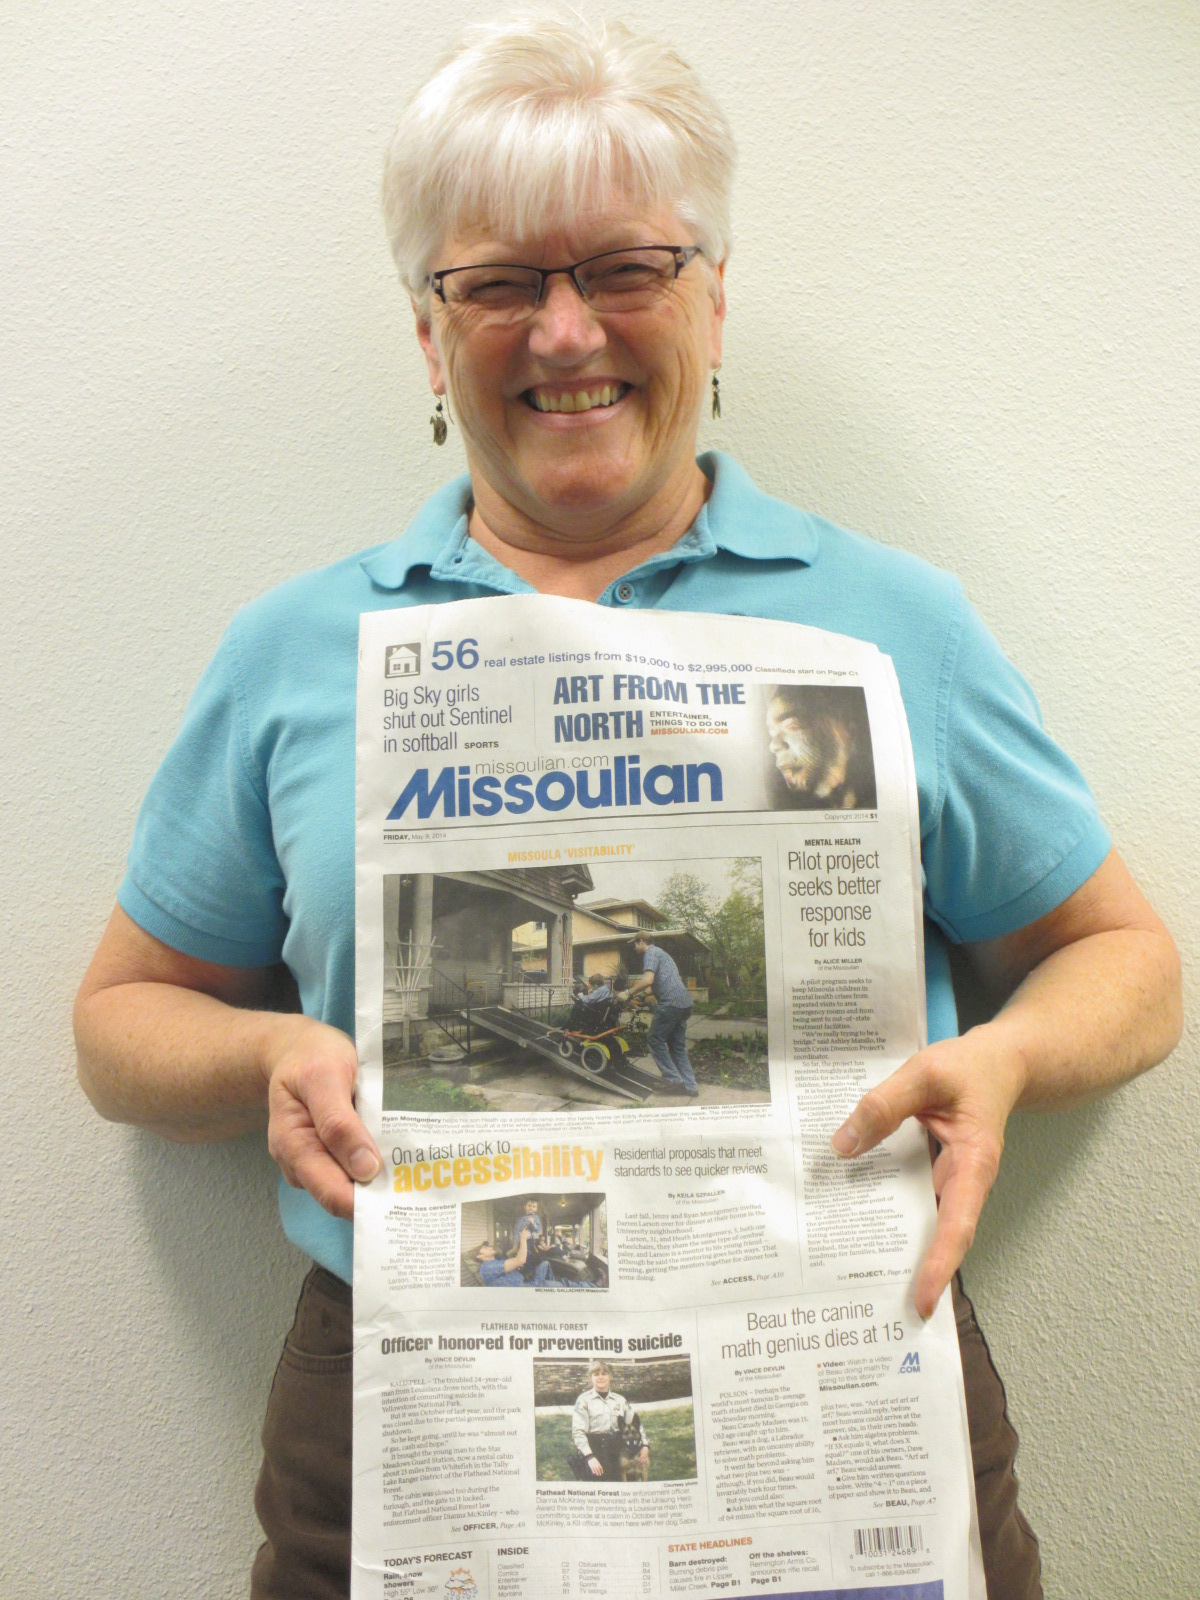 Summit's Jude Monson holding up a Missoulian newspaper showing a story about Visitability on the front page